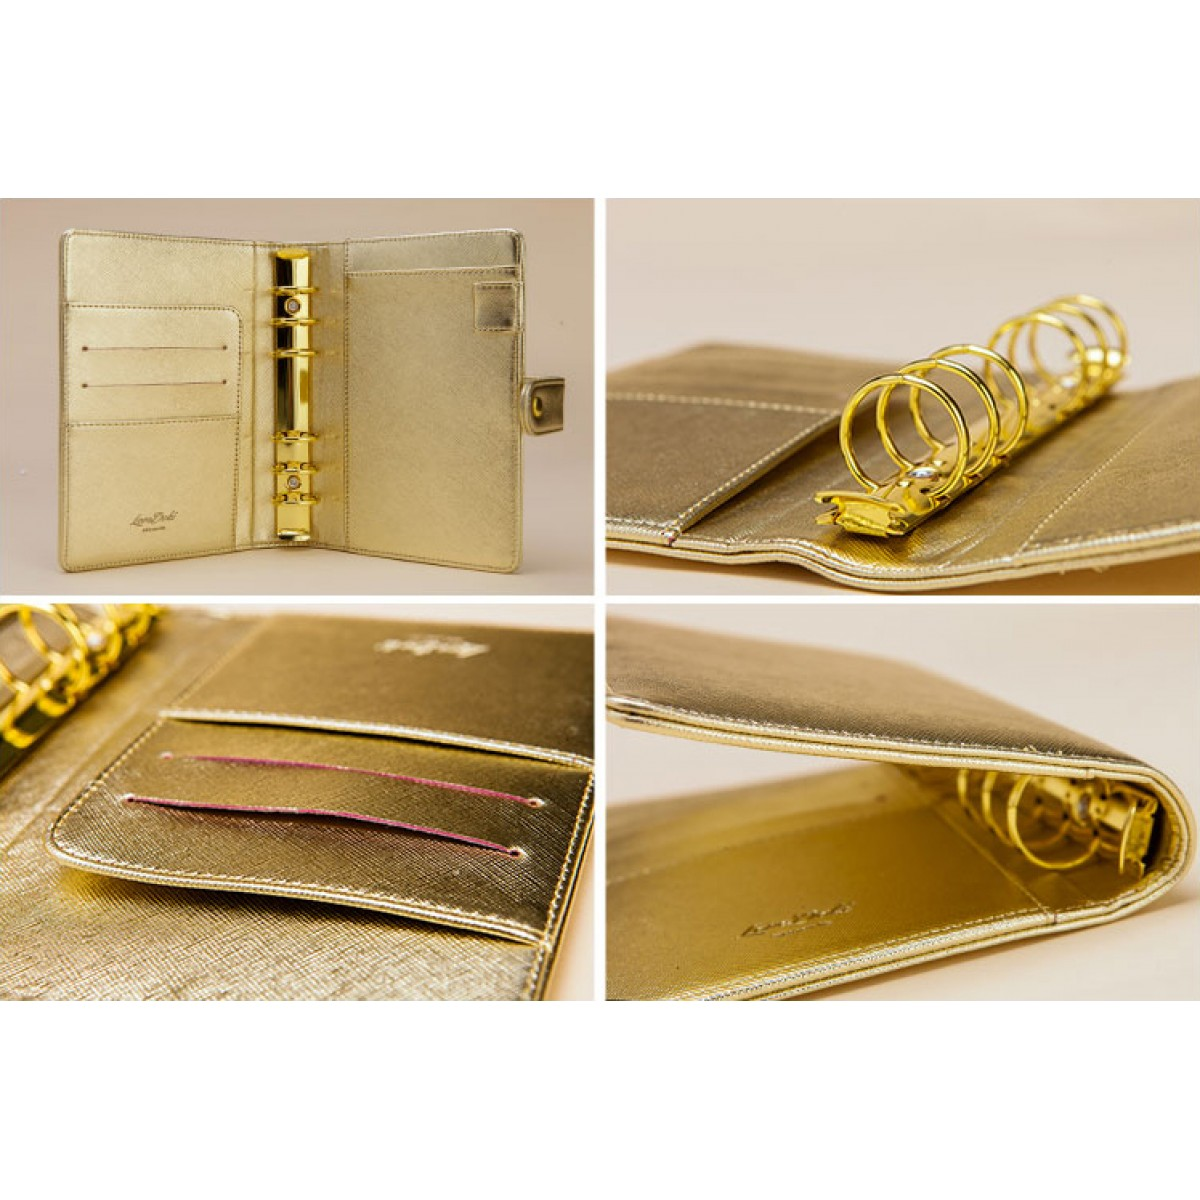 DOKIBOOK GOLDEN SMALL